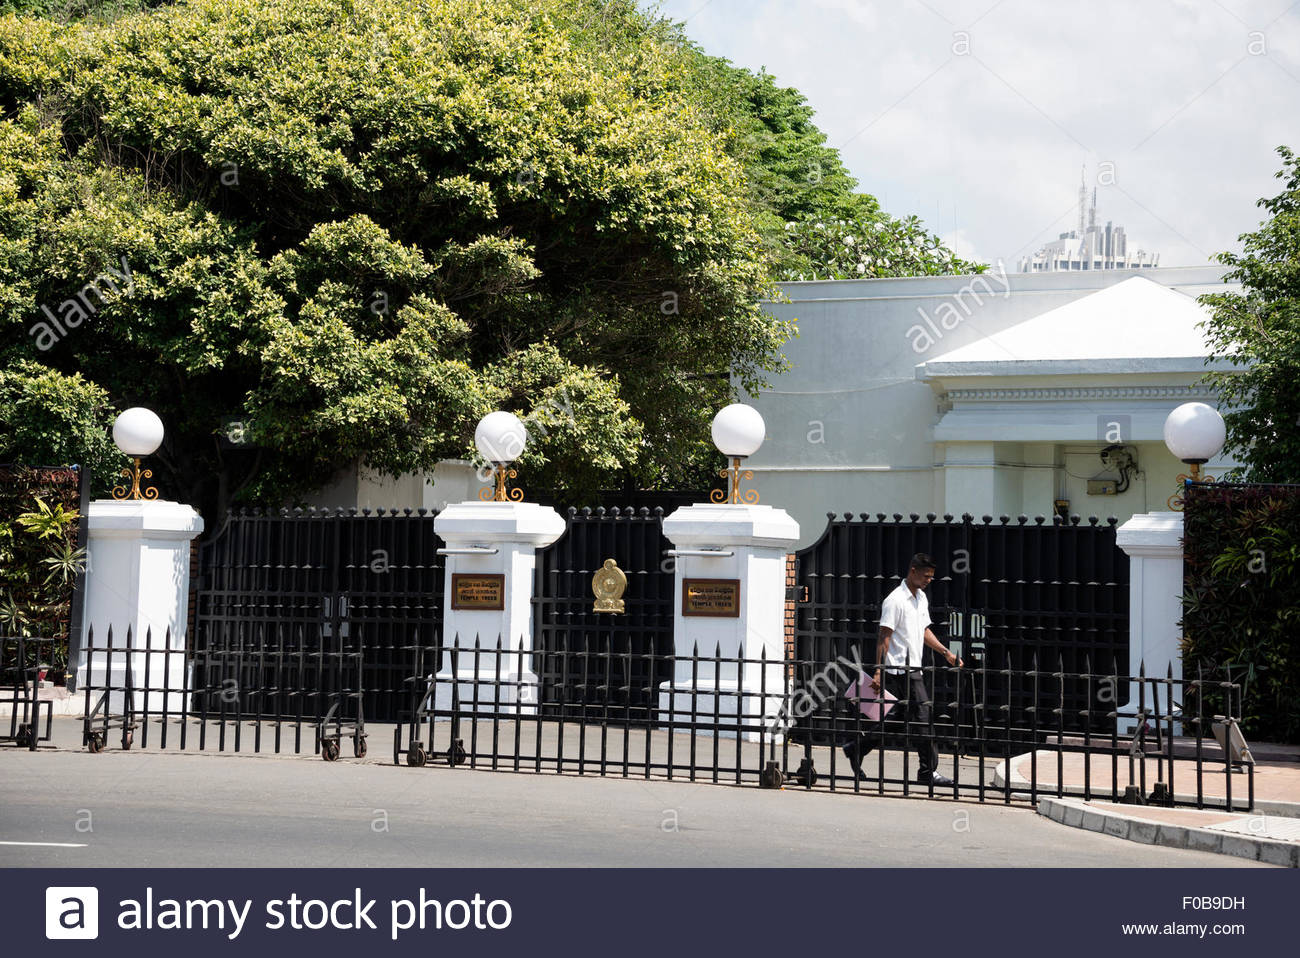 Temple Trees Colombo, The main entrance to the Prime Minister's official residence ...